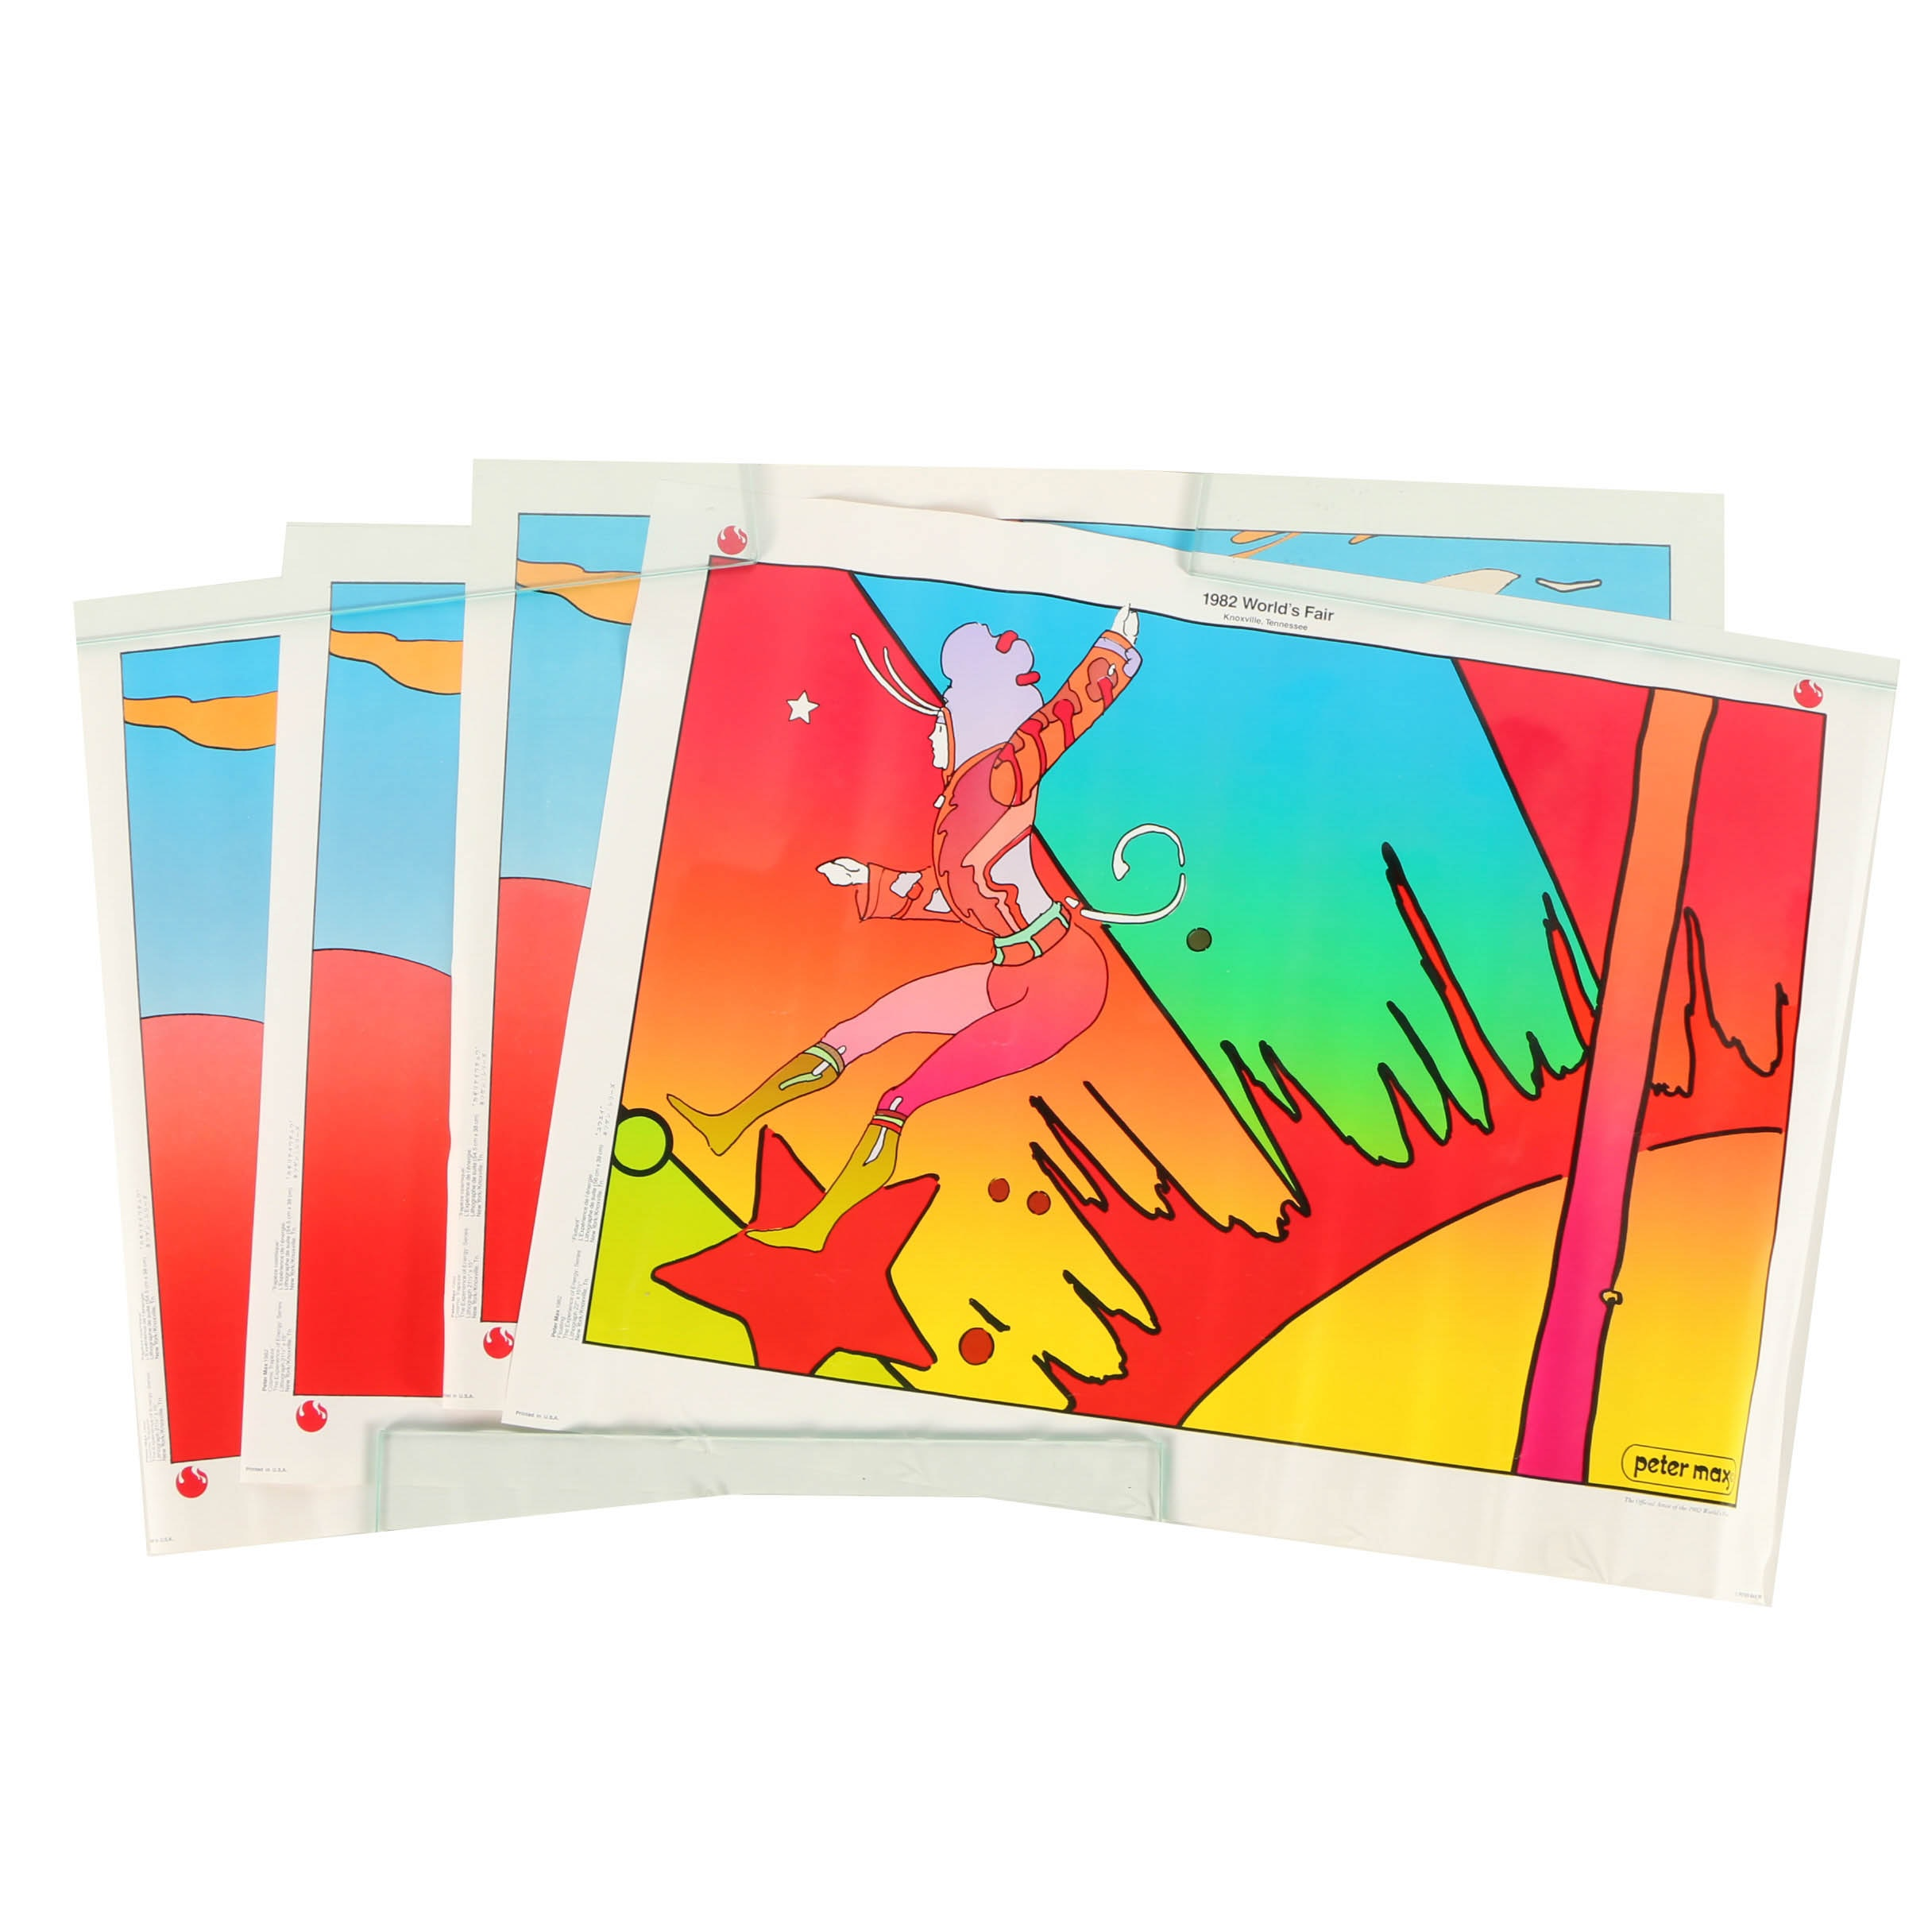 Lithographs after Peter Max